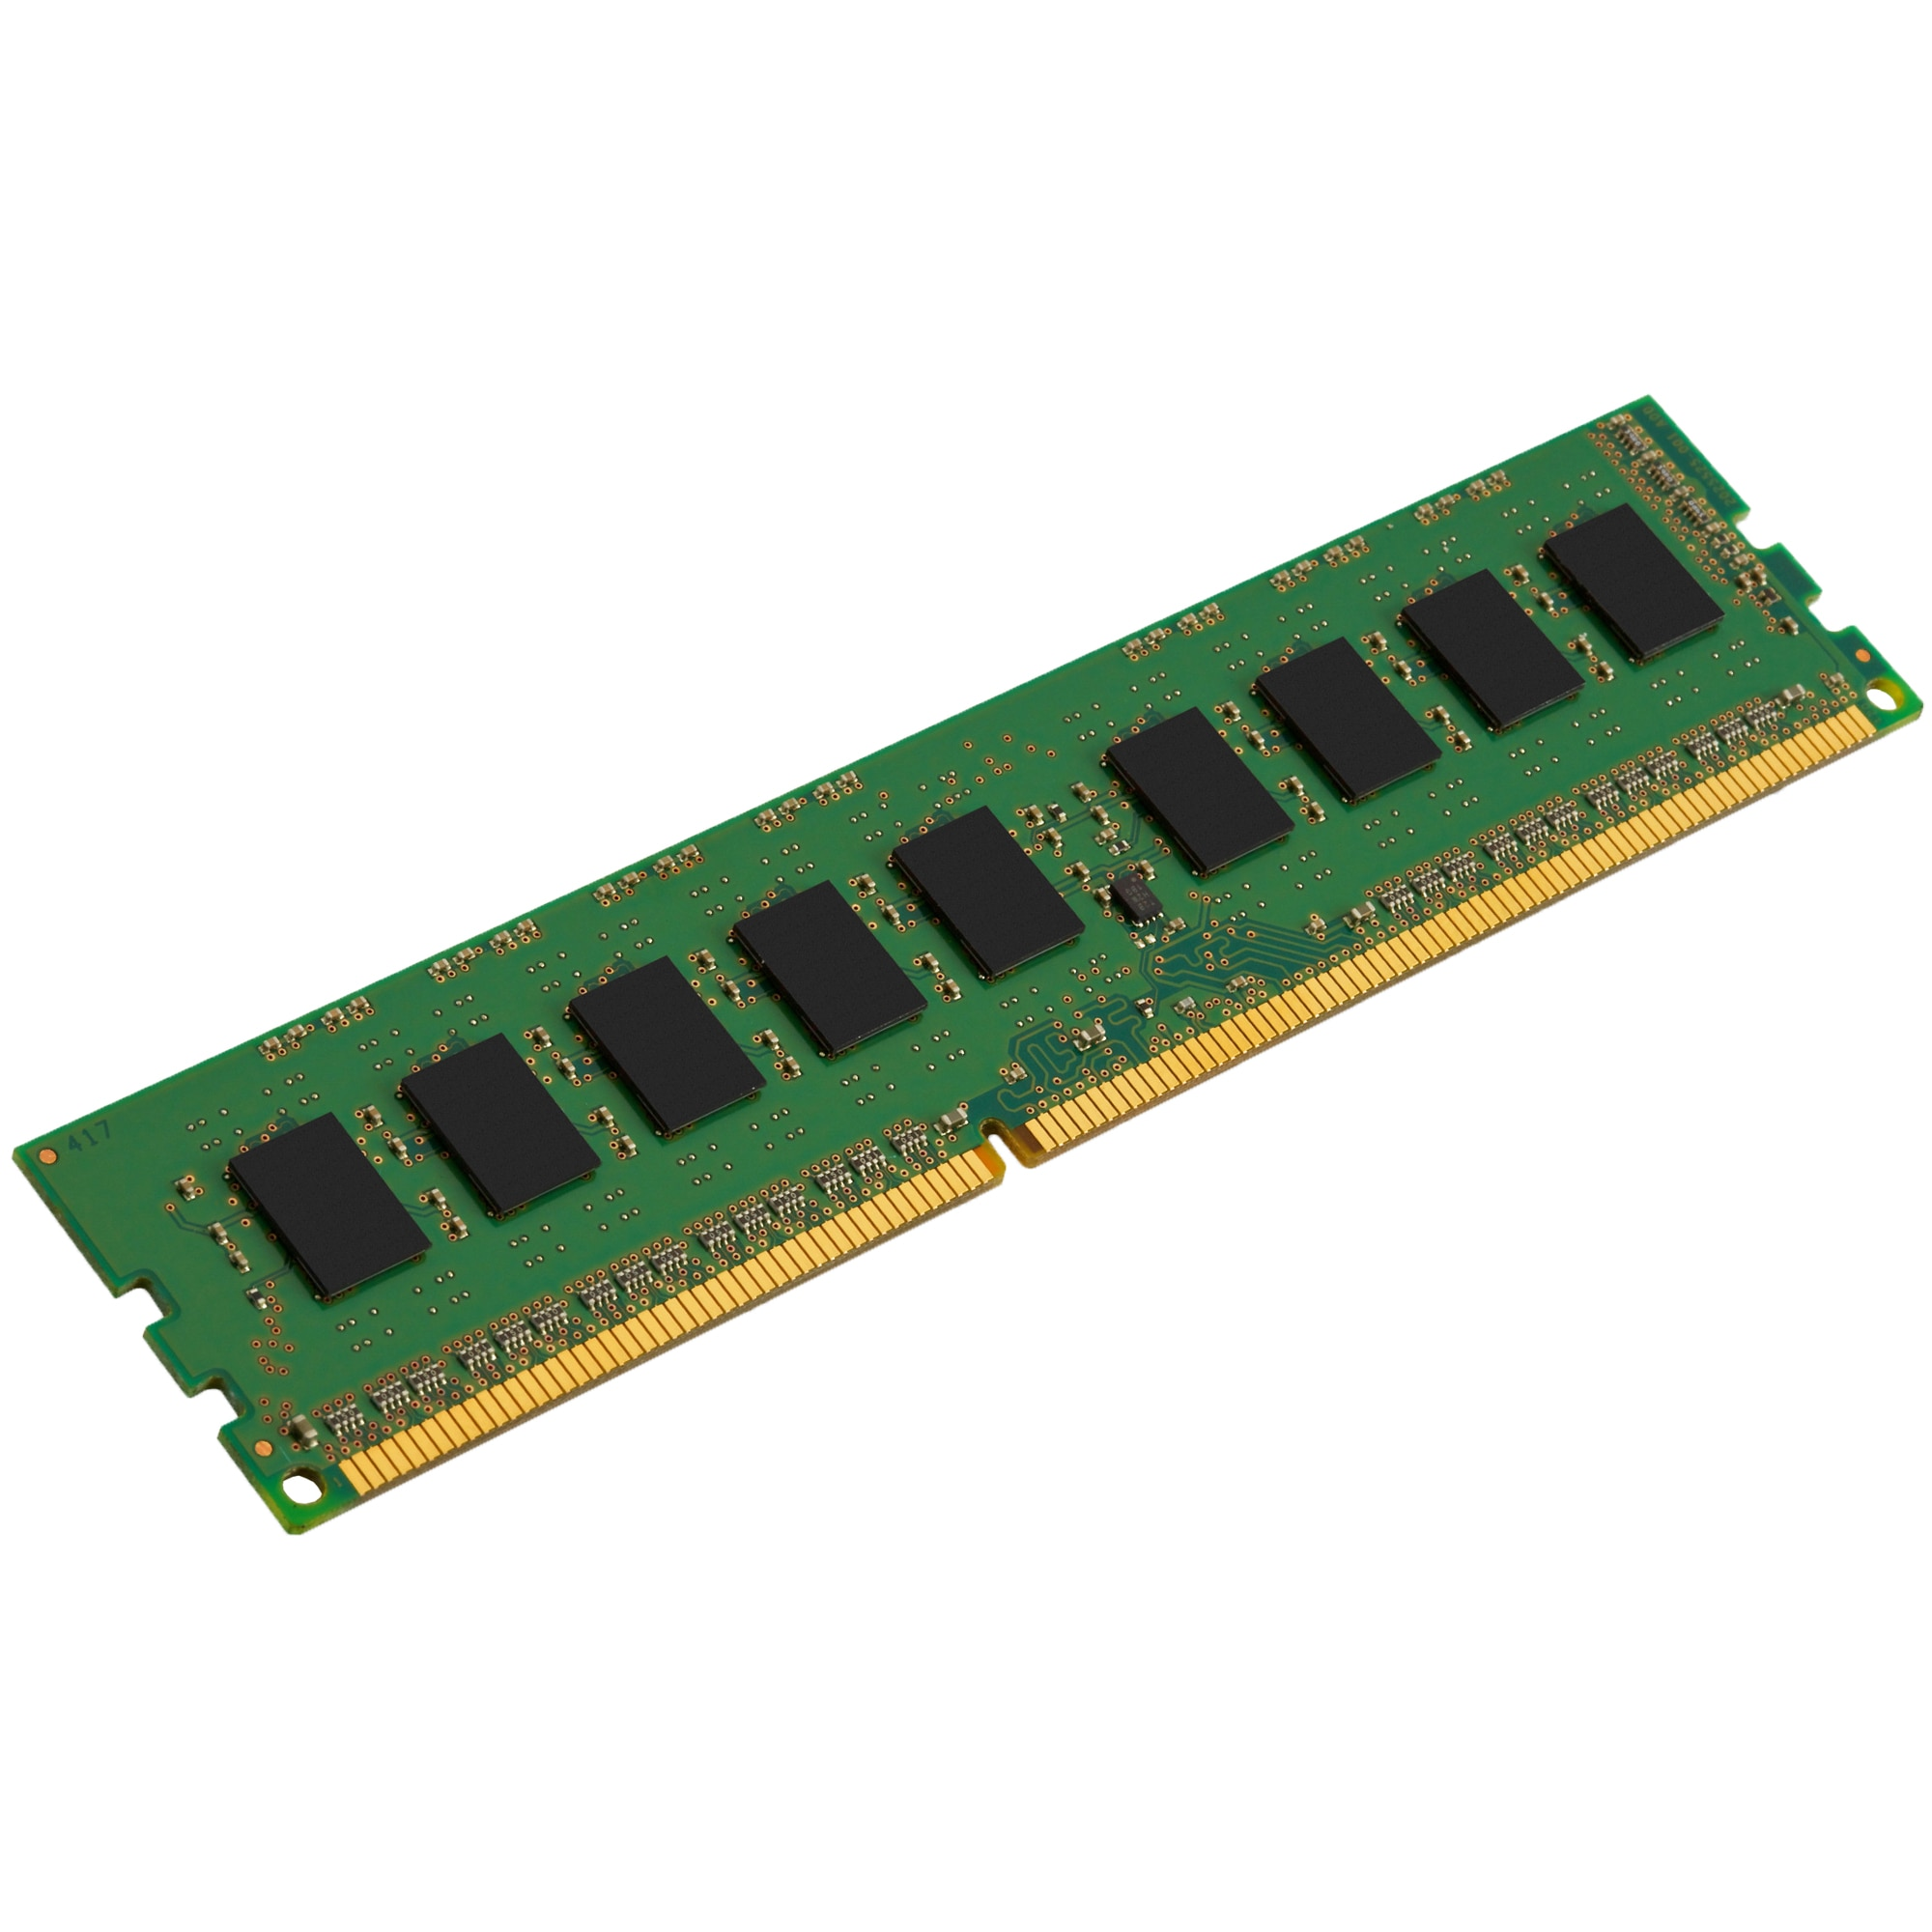 Fotografie Memorie Kingston 2GB, DDR3, 1333MHz, Non-ECC, CL9, 1.5V